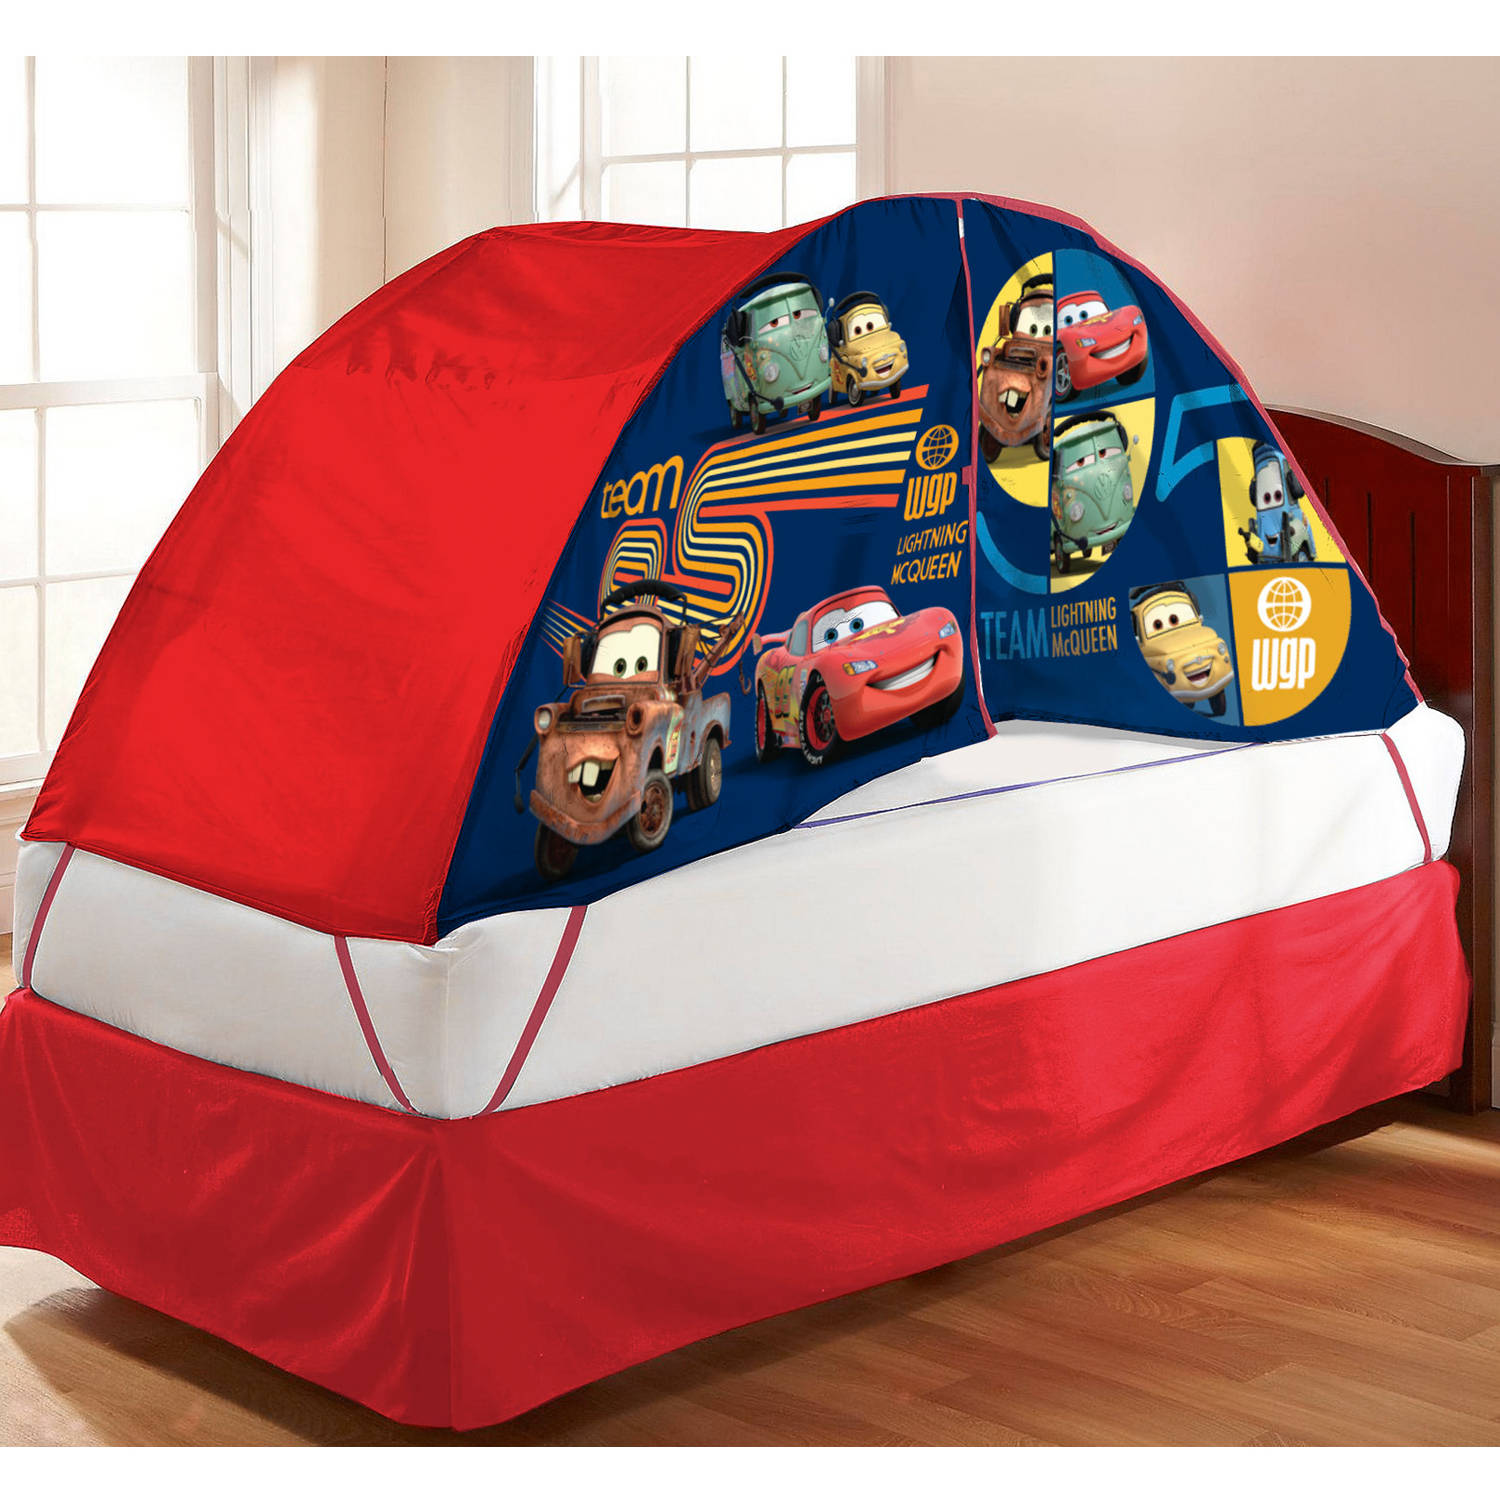 Disney Cars Bed Tent with Pushlight & Disney Cars Bed Tent with Pushlight - Walmart.com